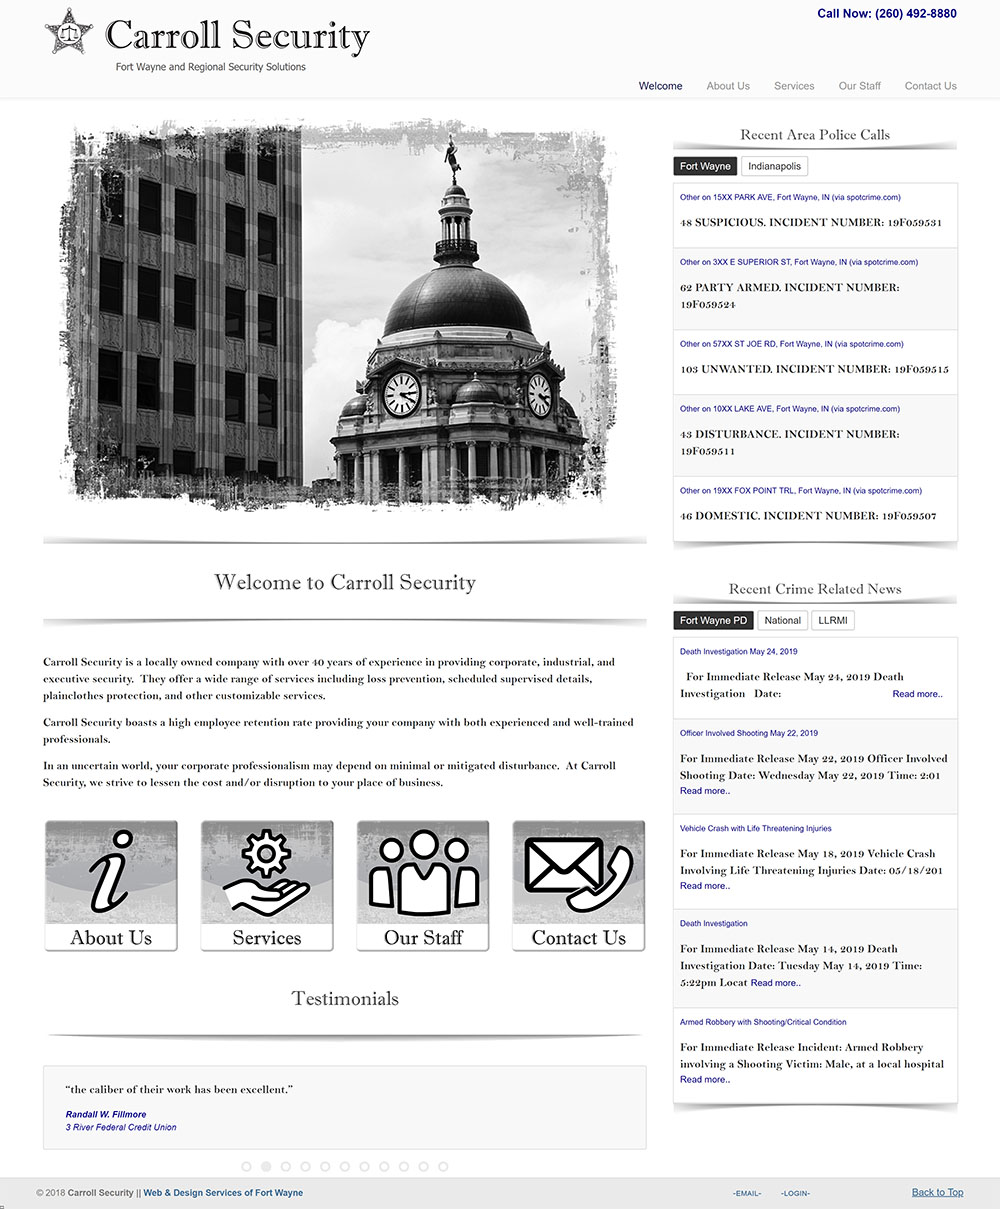 Screenshot of Carroll Security website